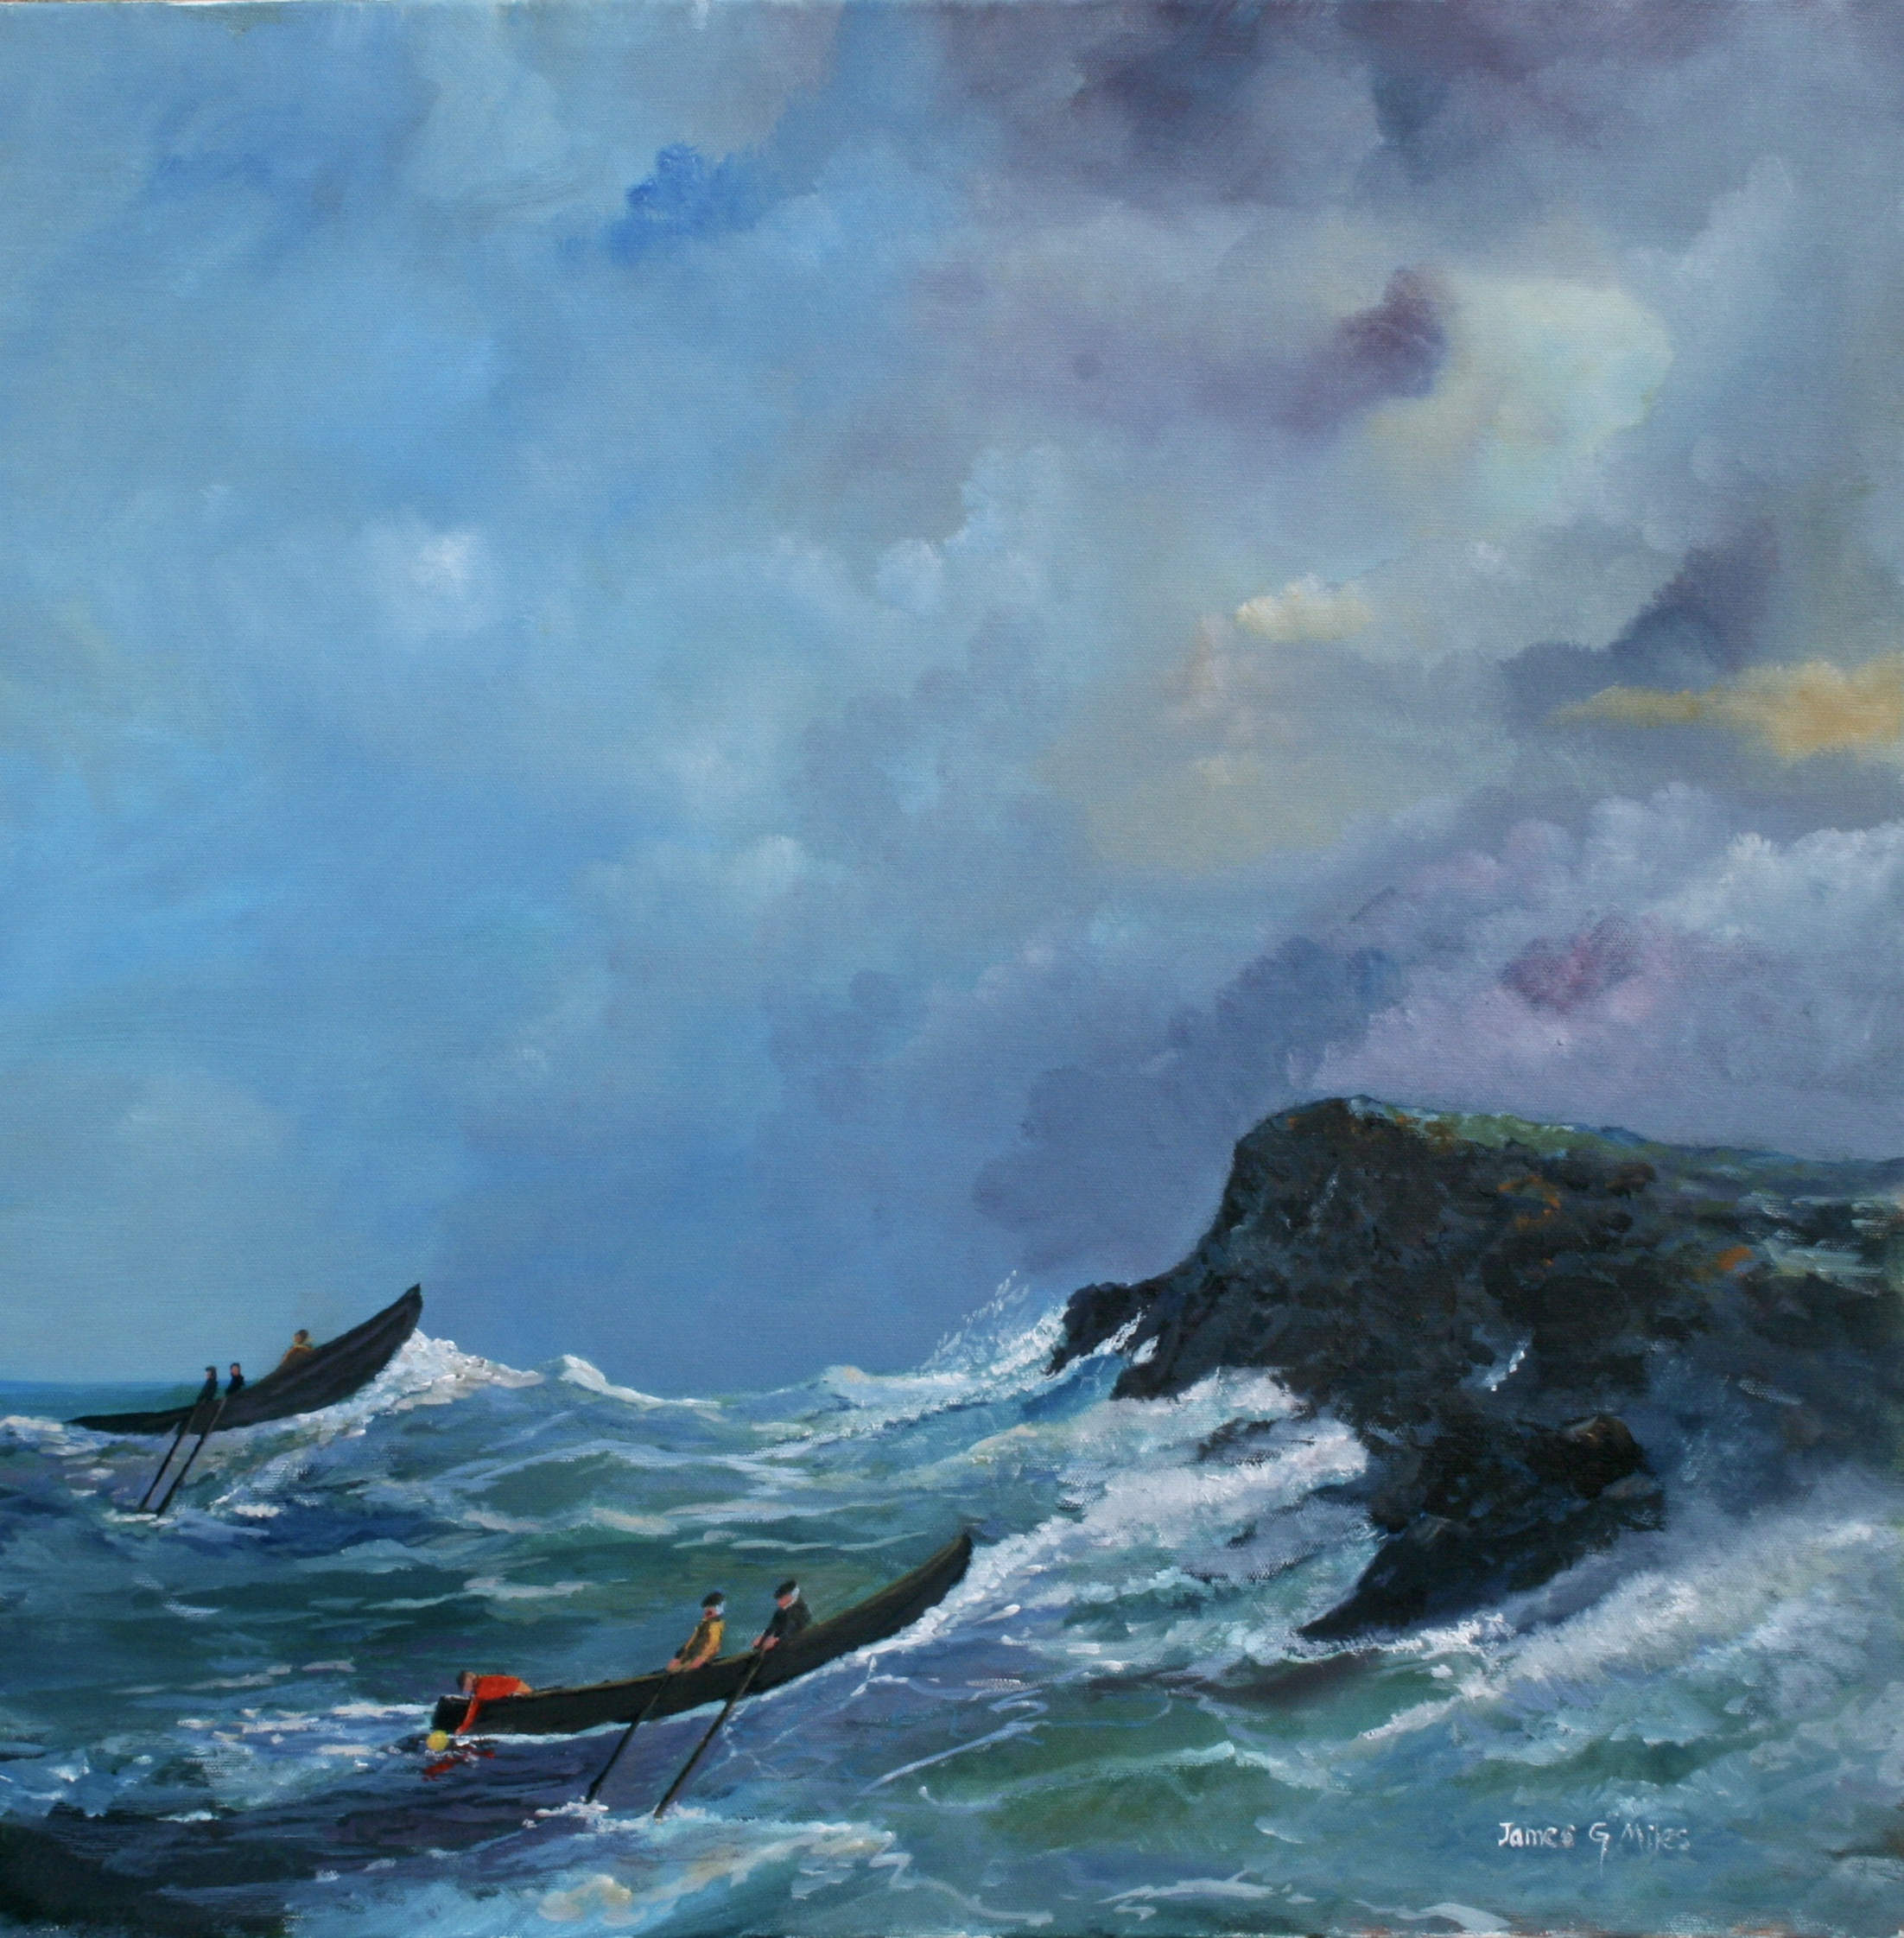 https://galwayhookers.com/works/currachmen-lifting-the-pots-in-an-atlantic-swell-1850/